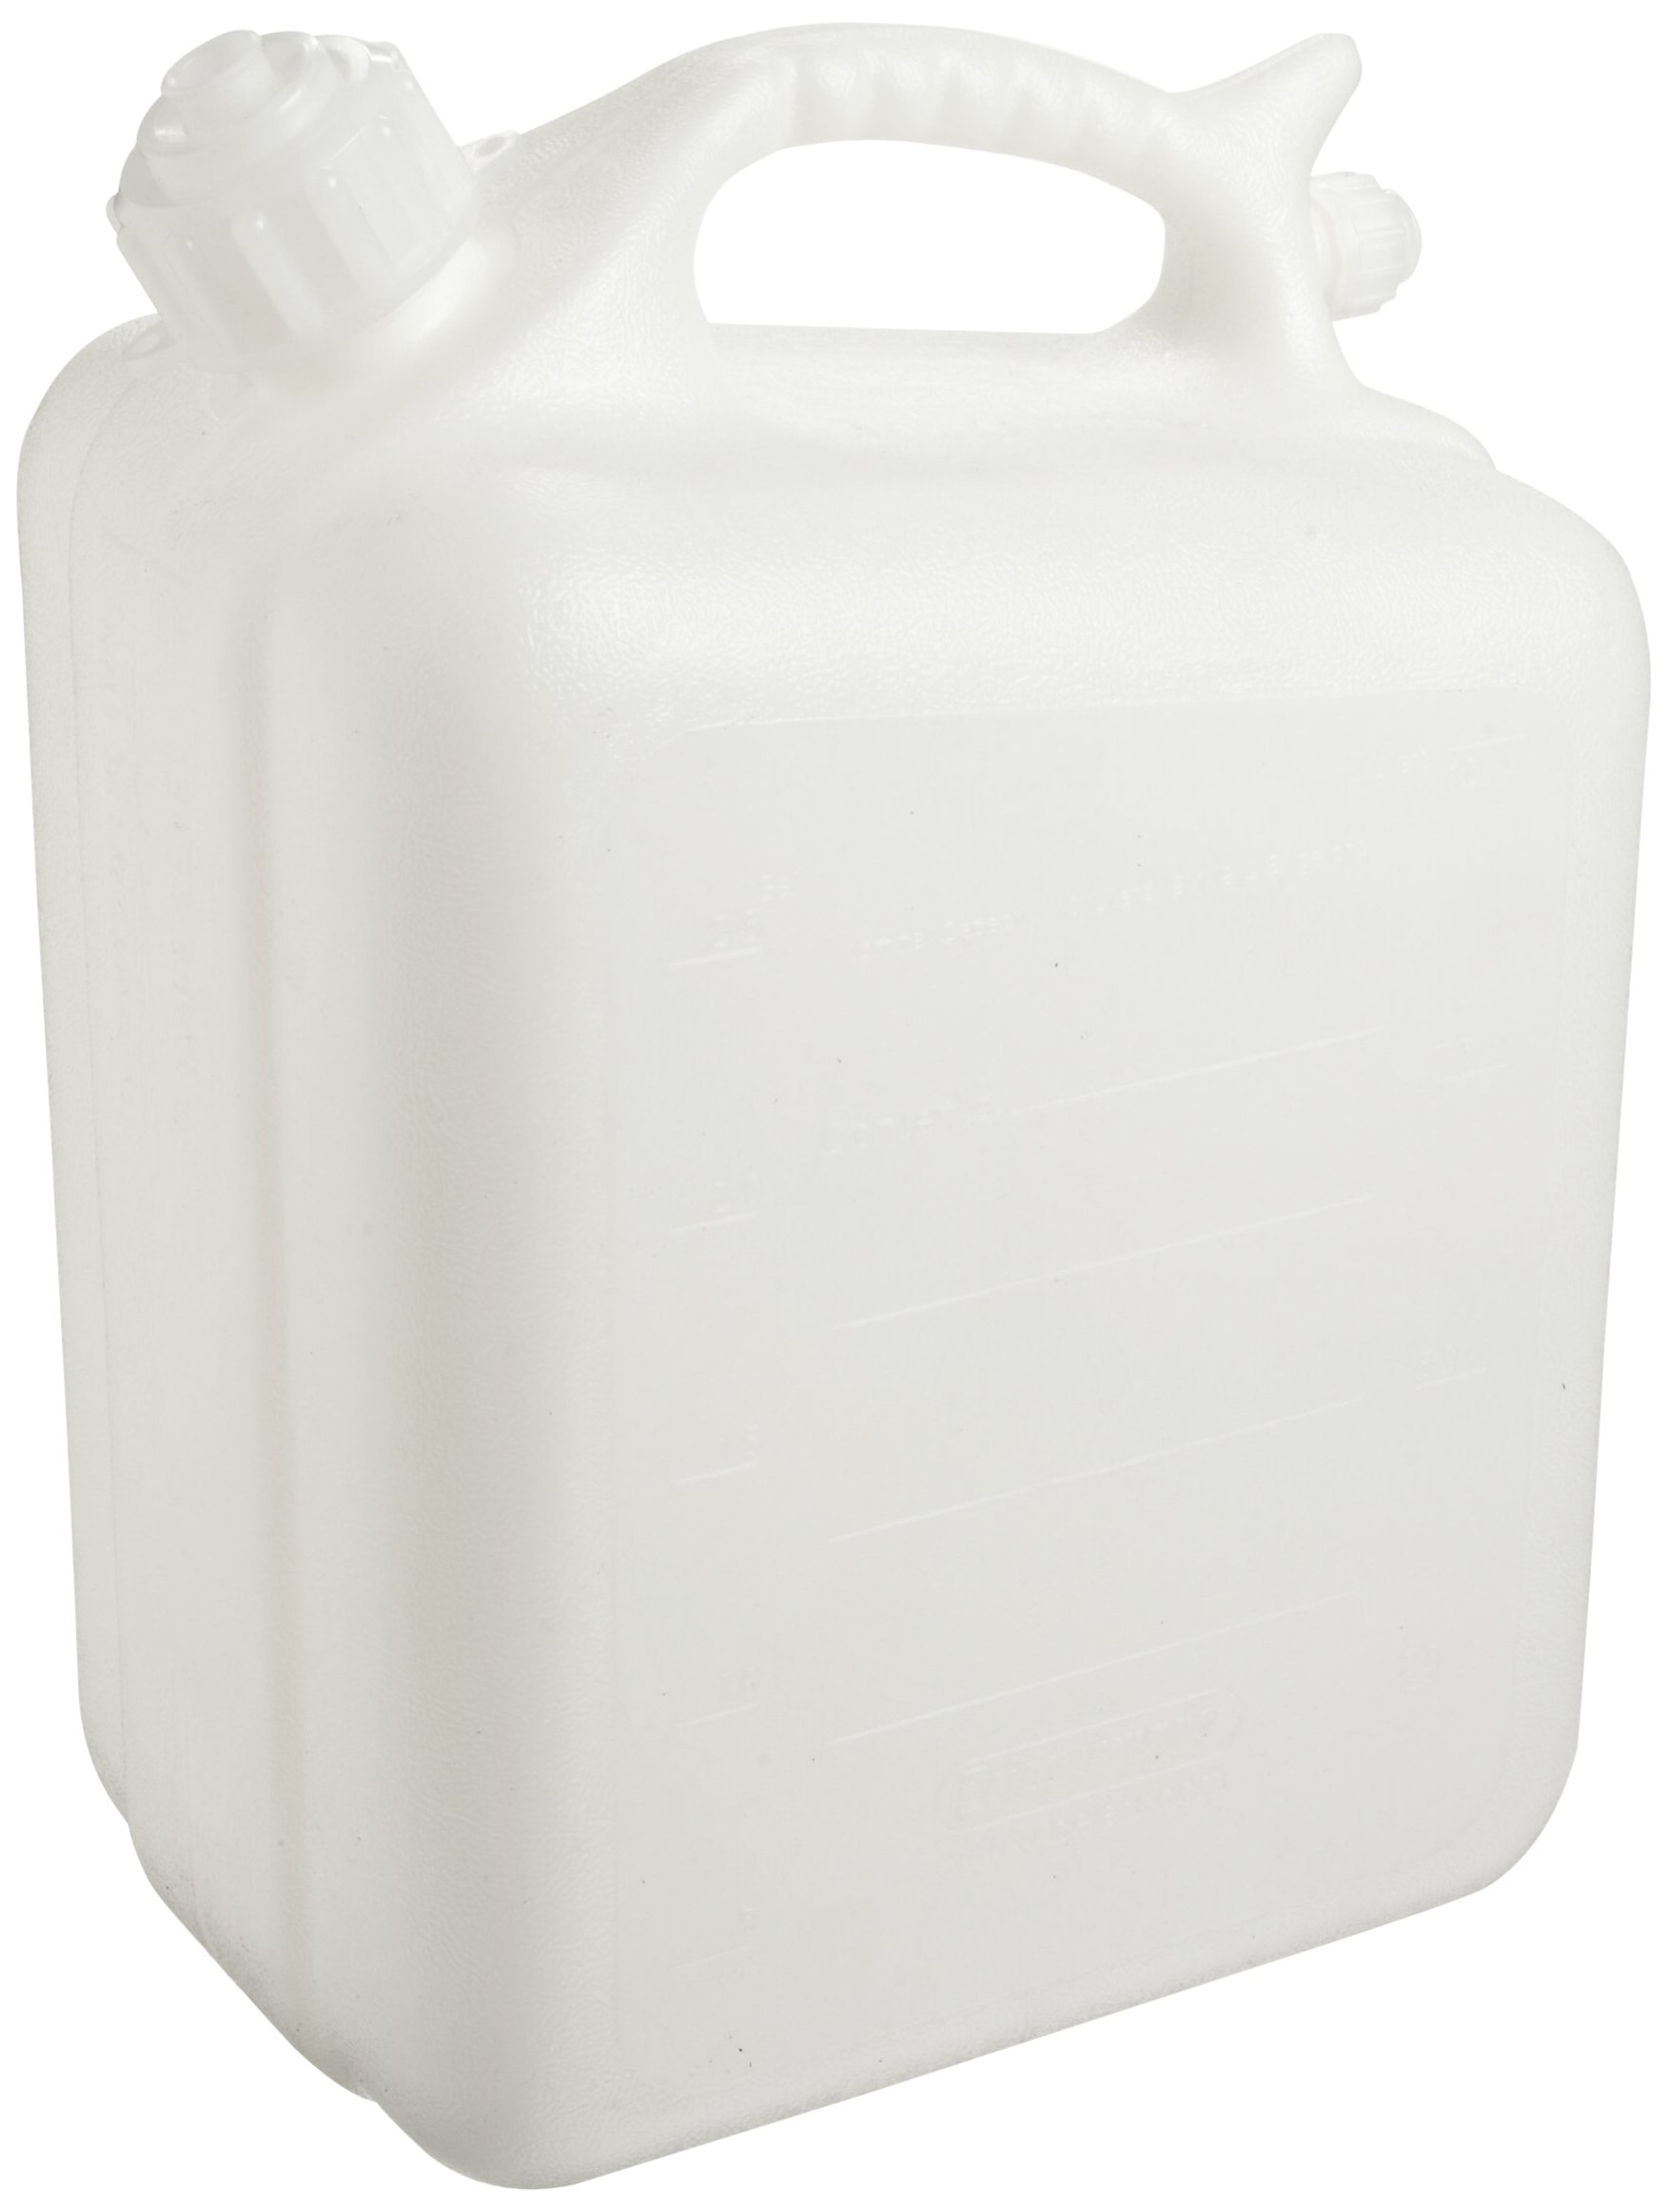 Bel-Art Polyethylene Jerrican; 10 Liters (2.5 Gallons), Screw Cap, ¾ in. I.D. Spout (H10936-0000)